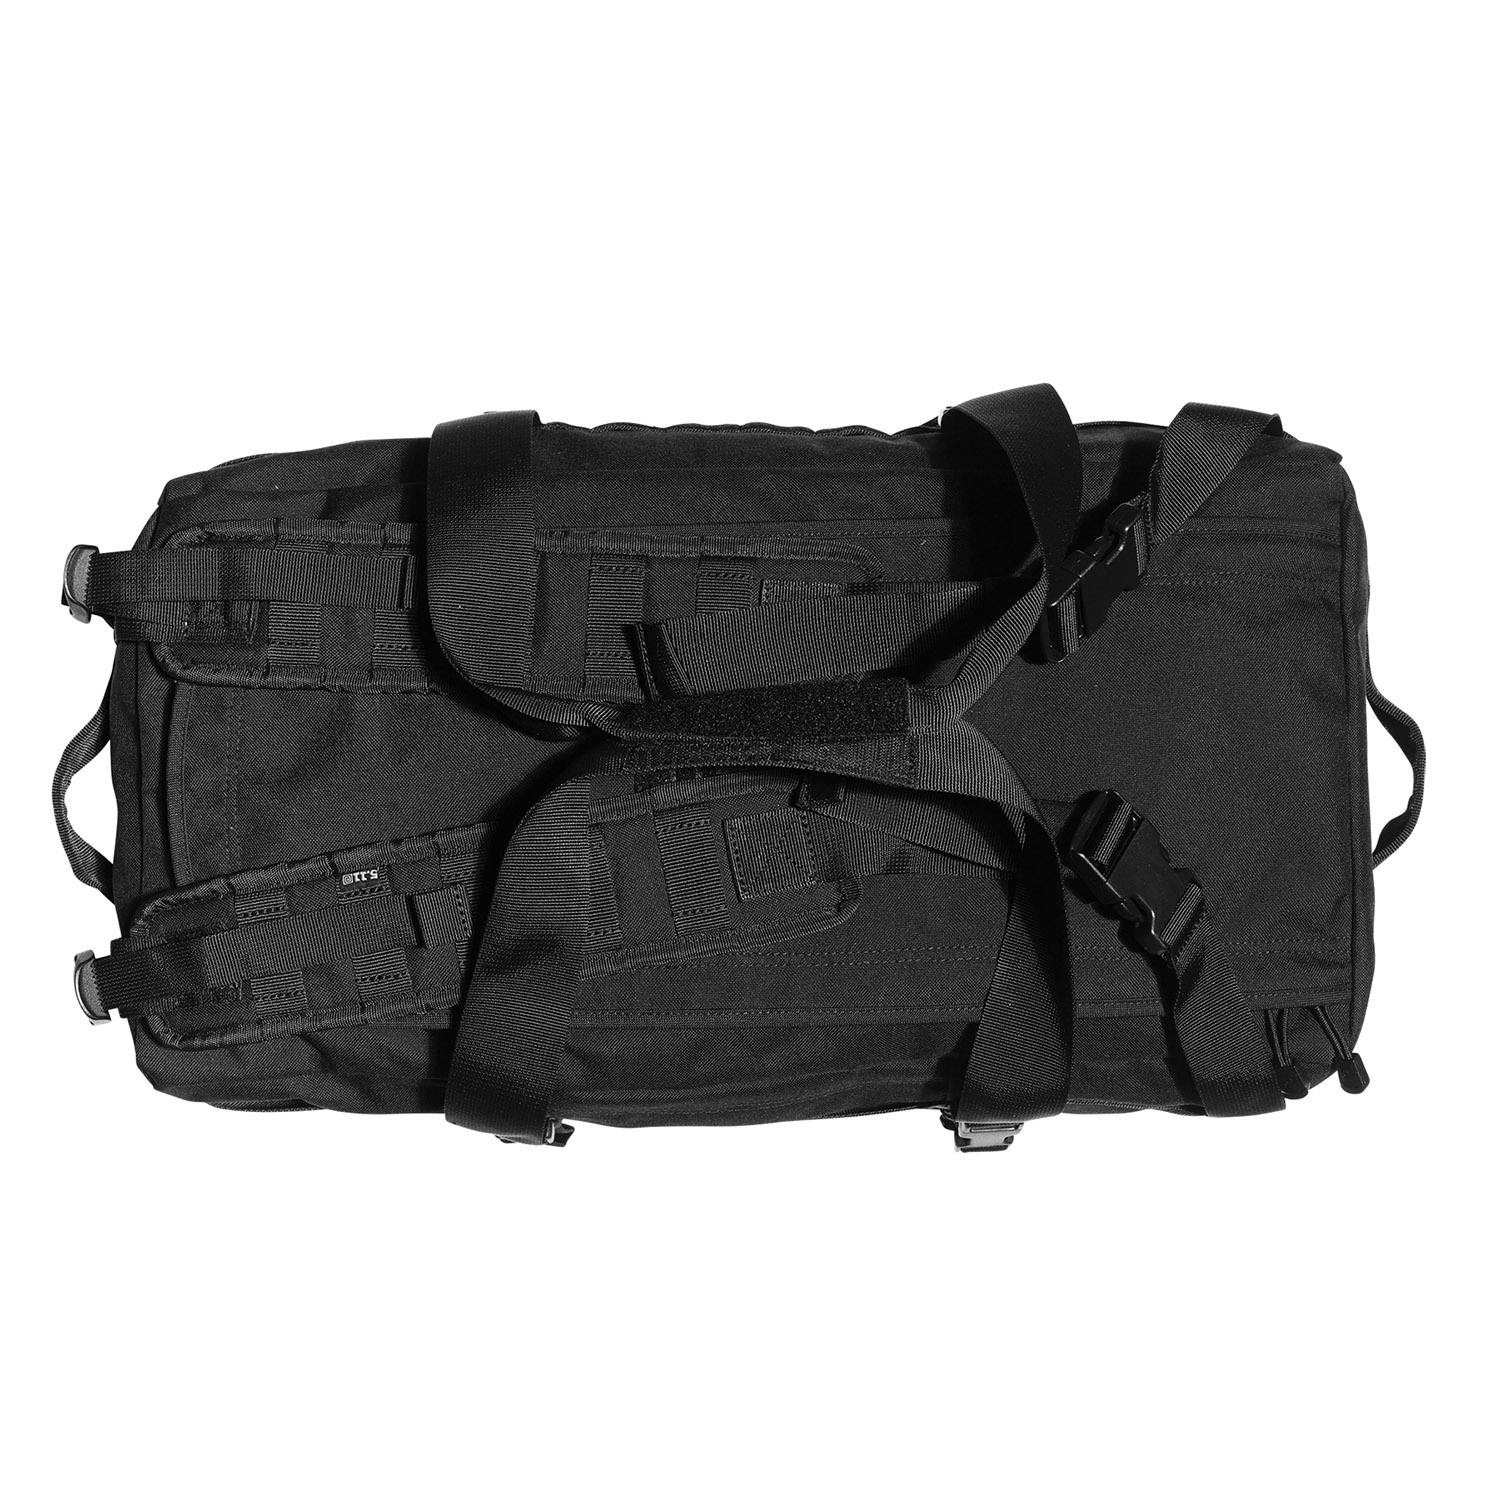 0a2557b12e Under Armor Gym Bag Amazon | The Shred Centre